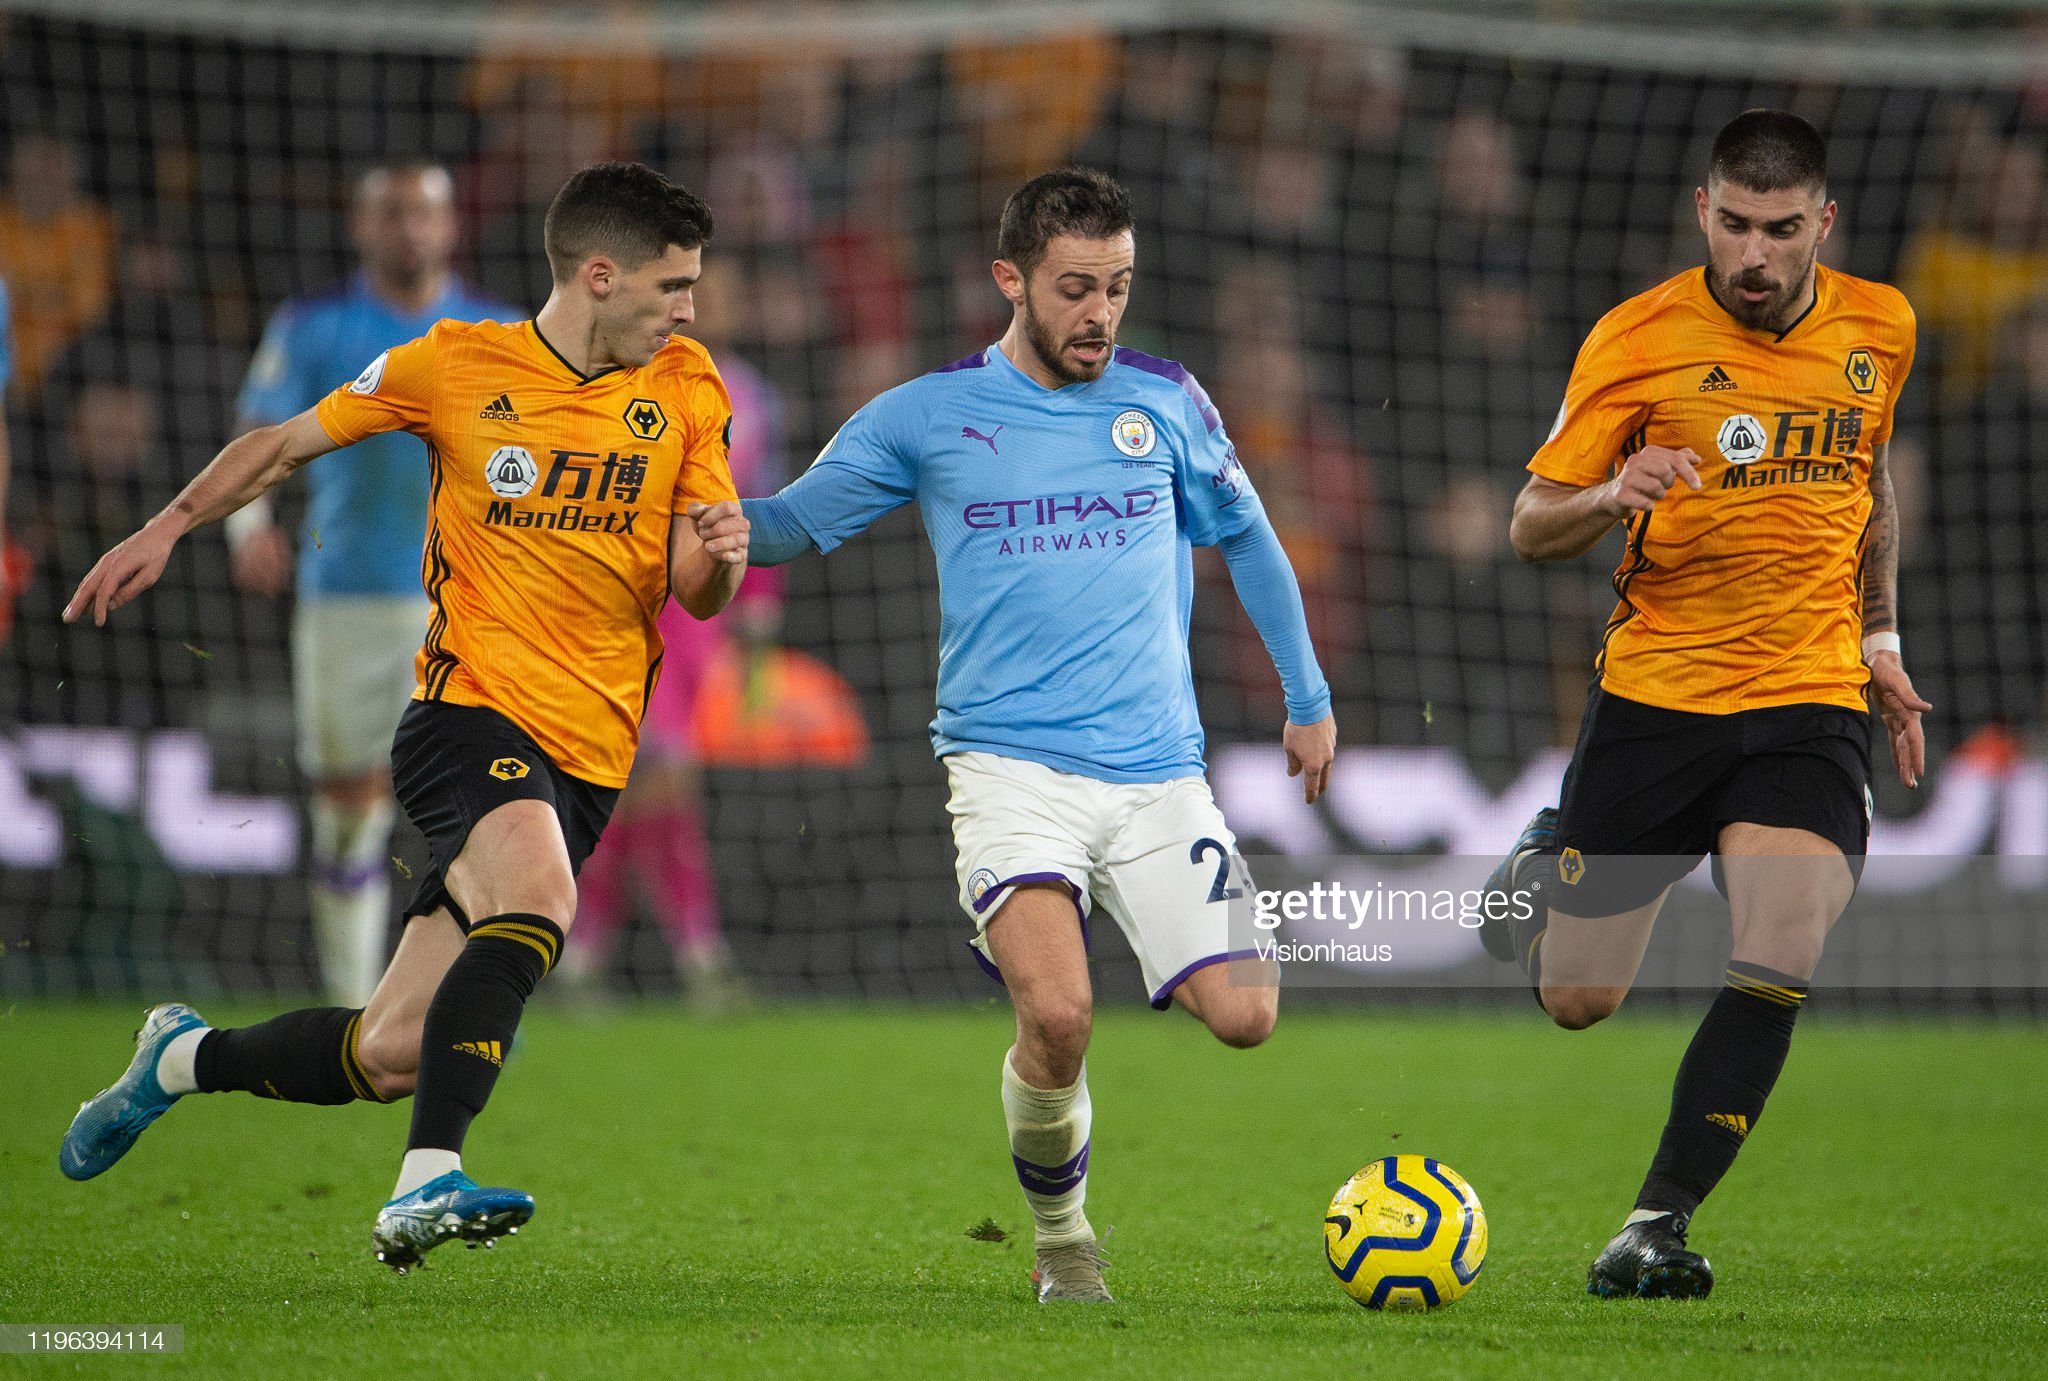 Wolves vs Manchester City Preview, prediction and odds